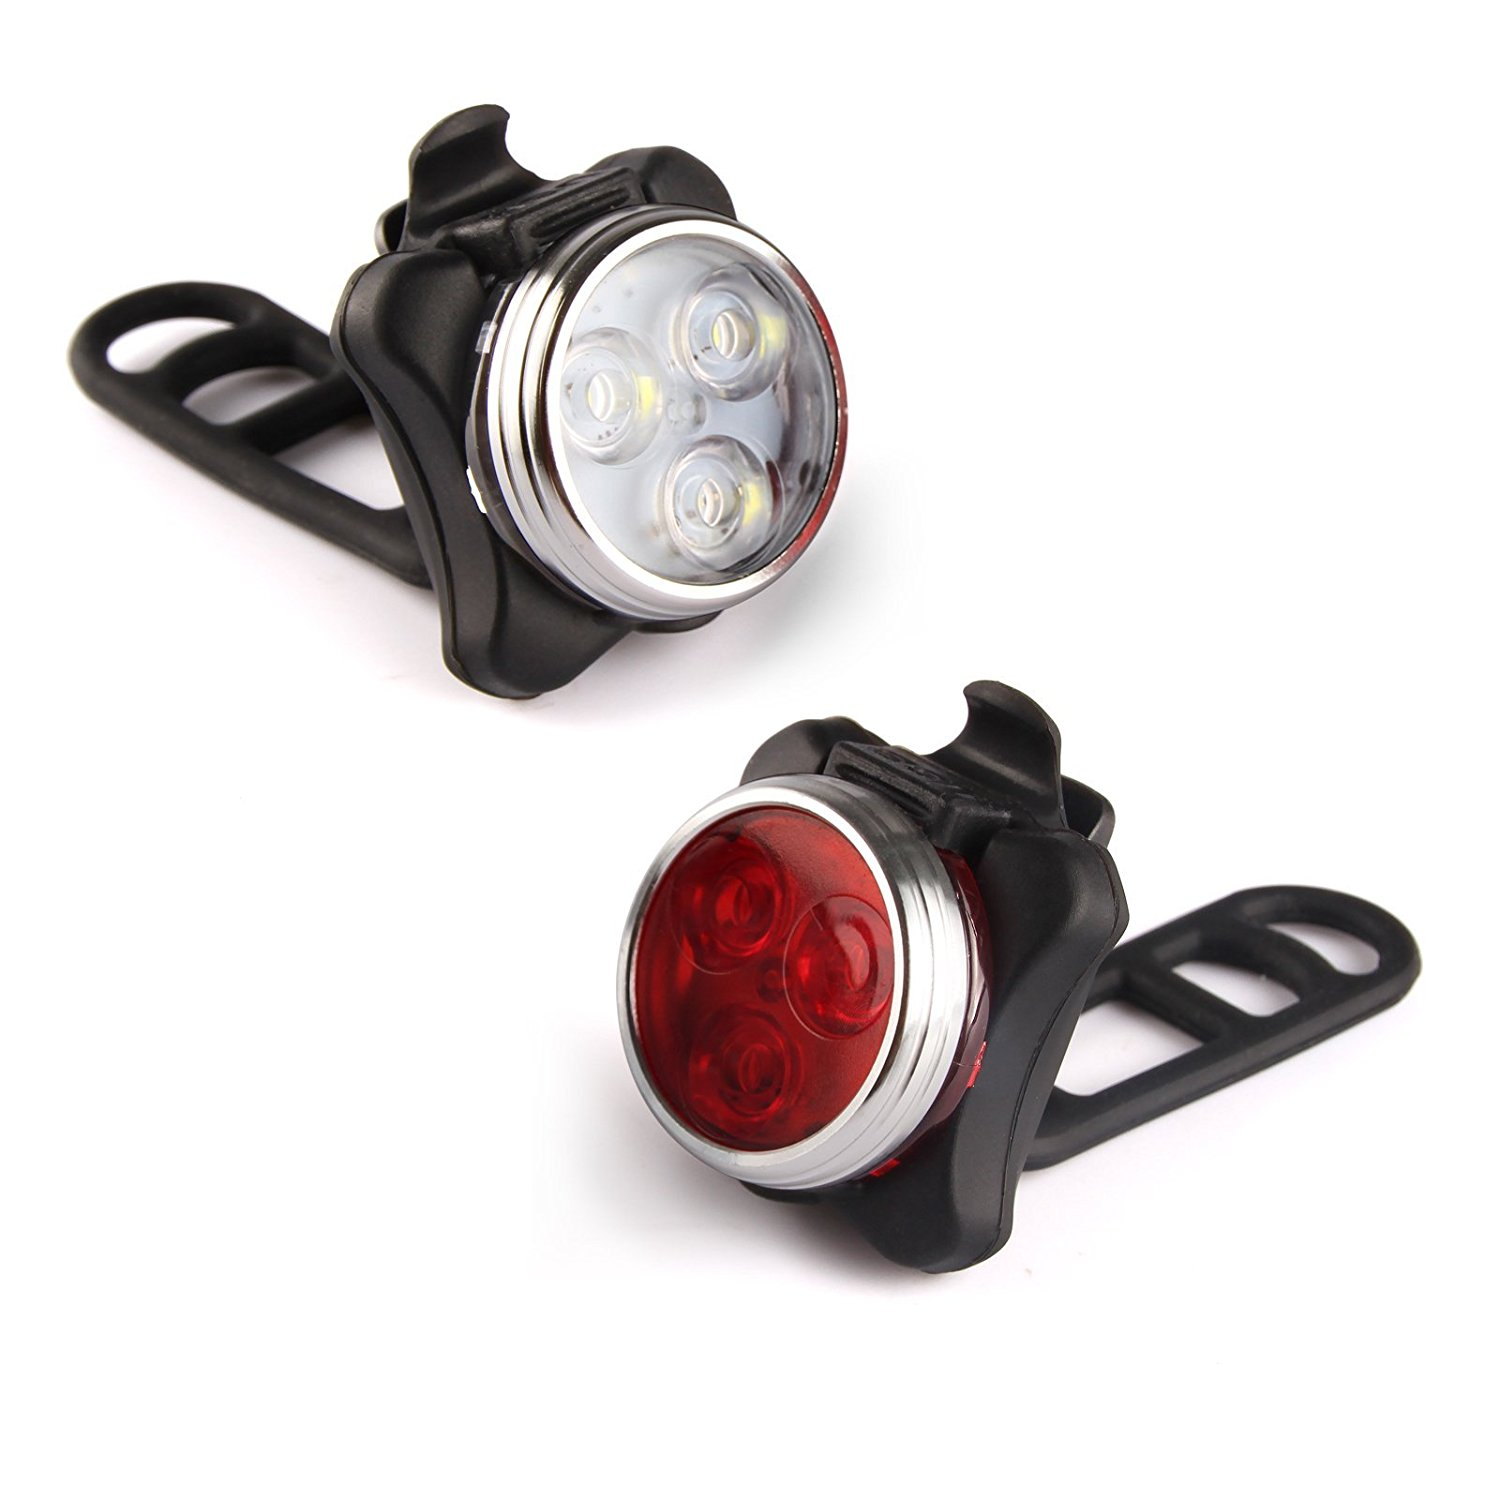 Ascher Rechargeable Led Bike Lights Set Review Road And